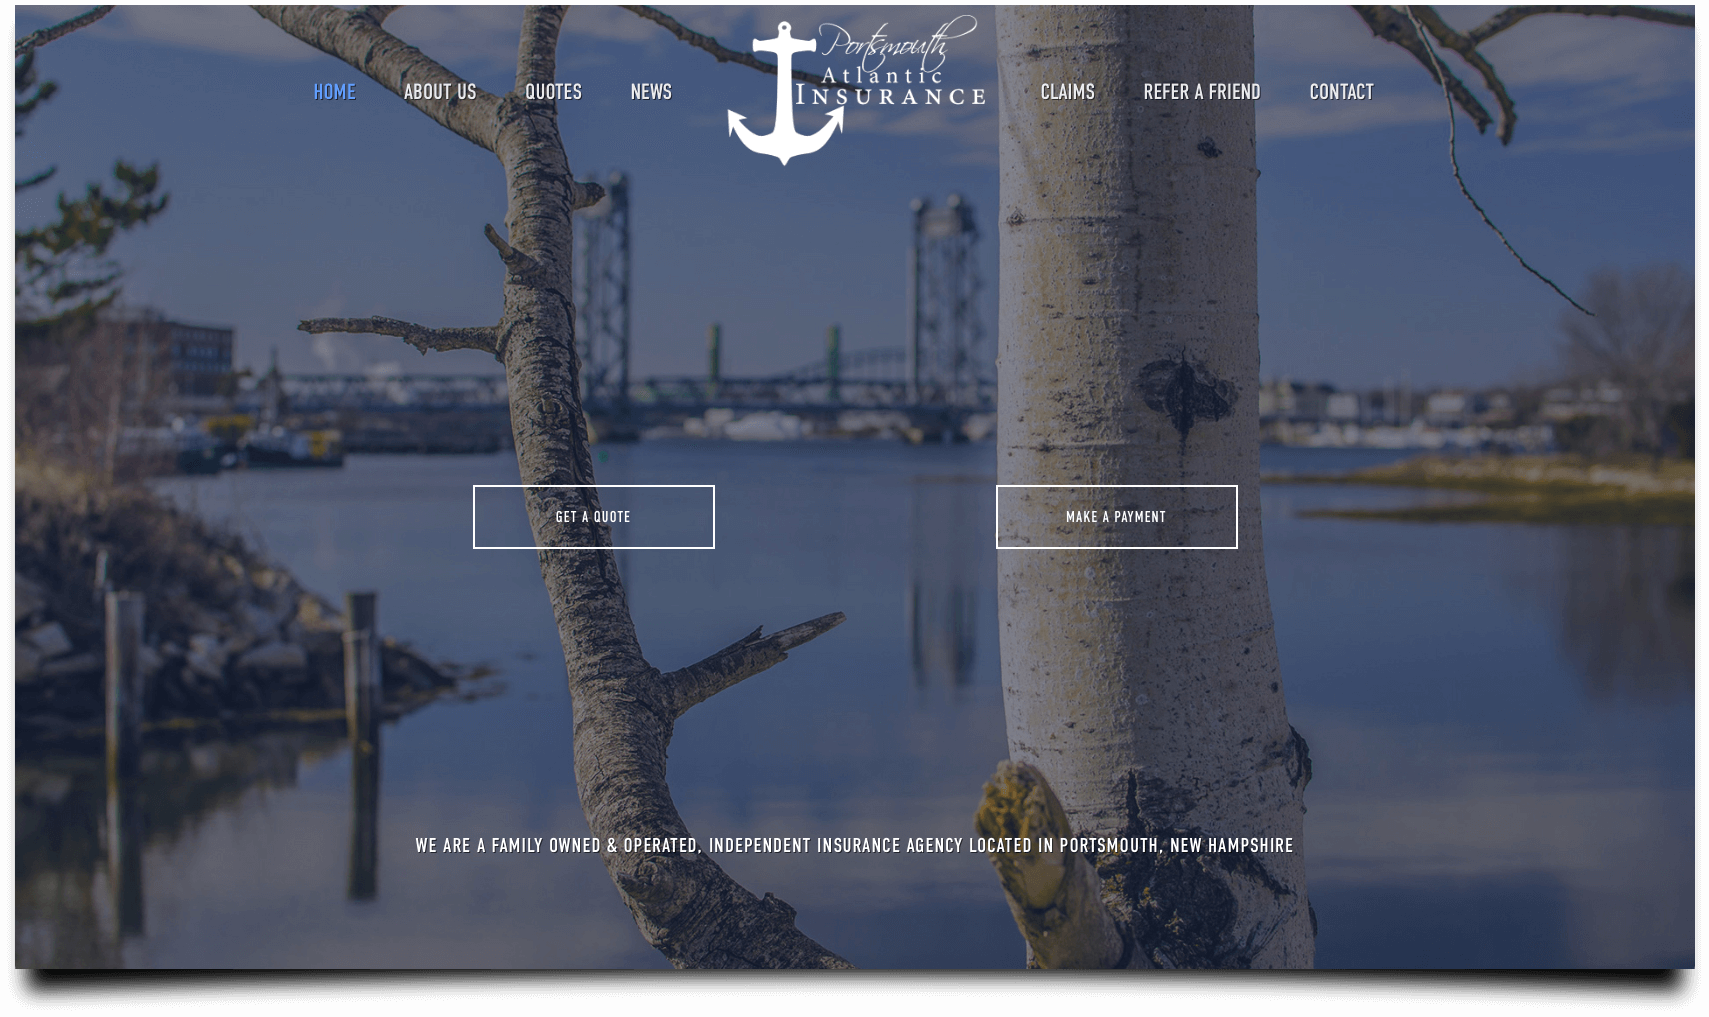 website design for insurance vertical